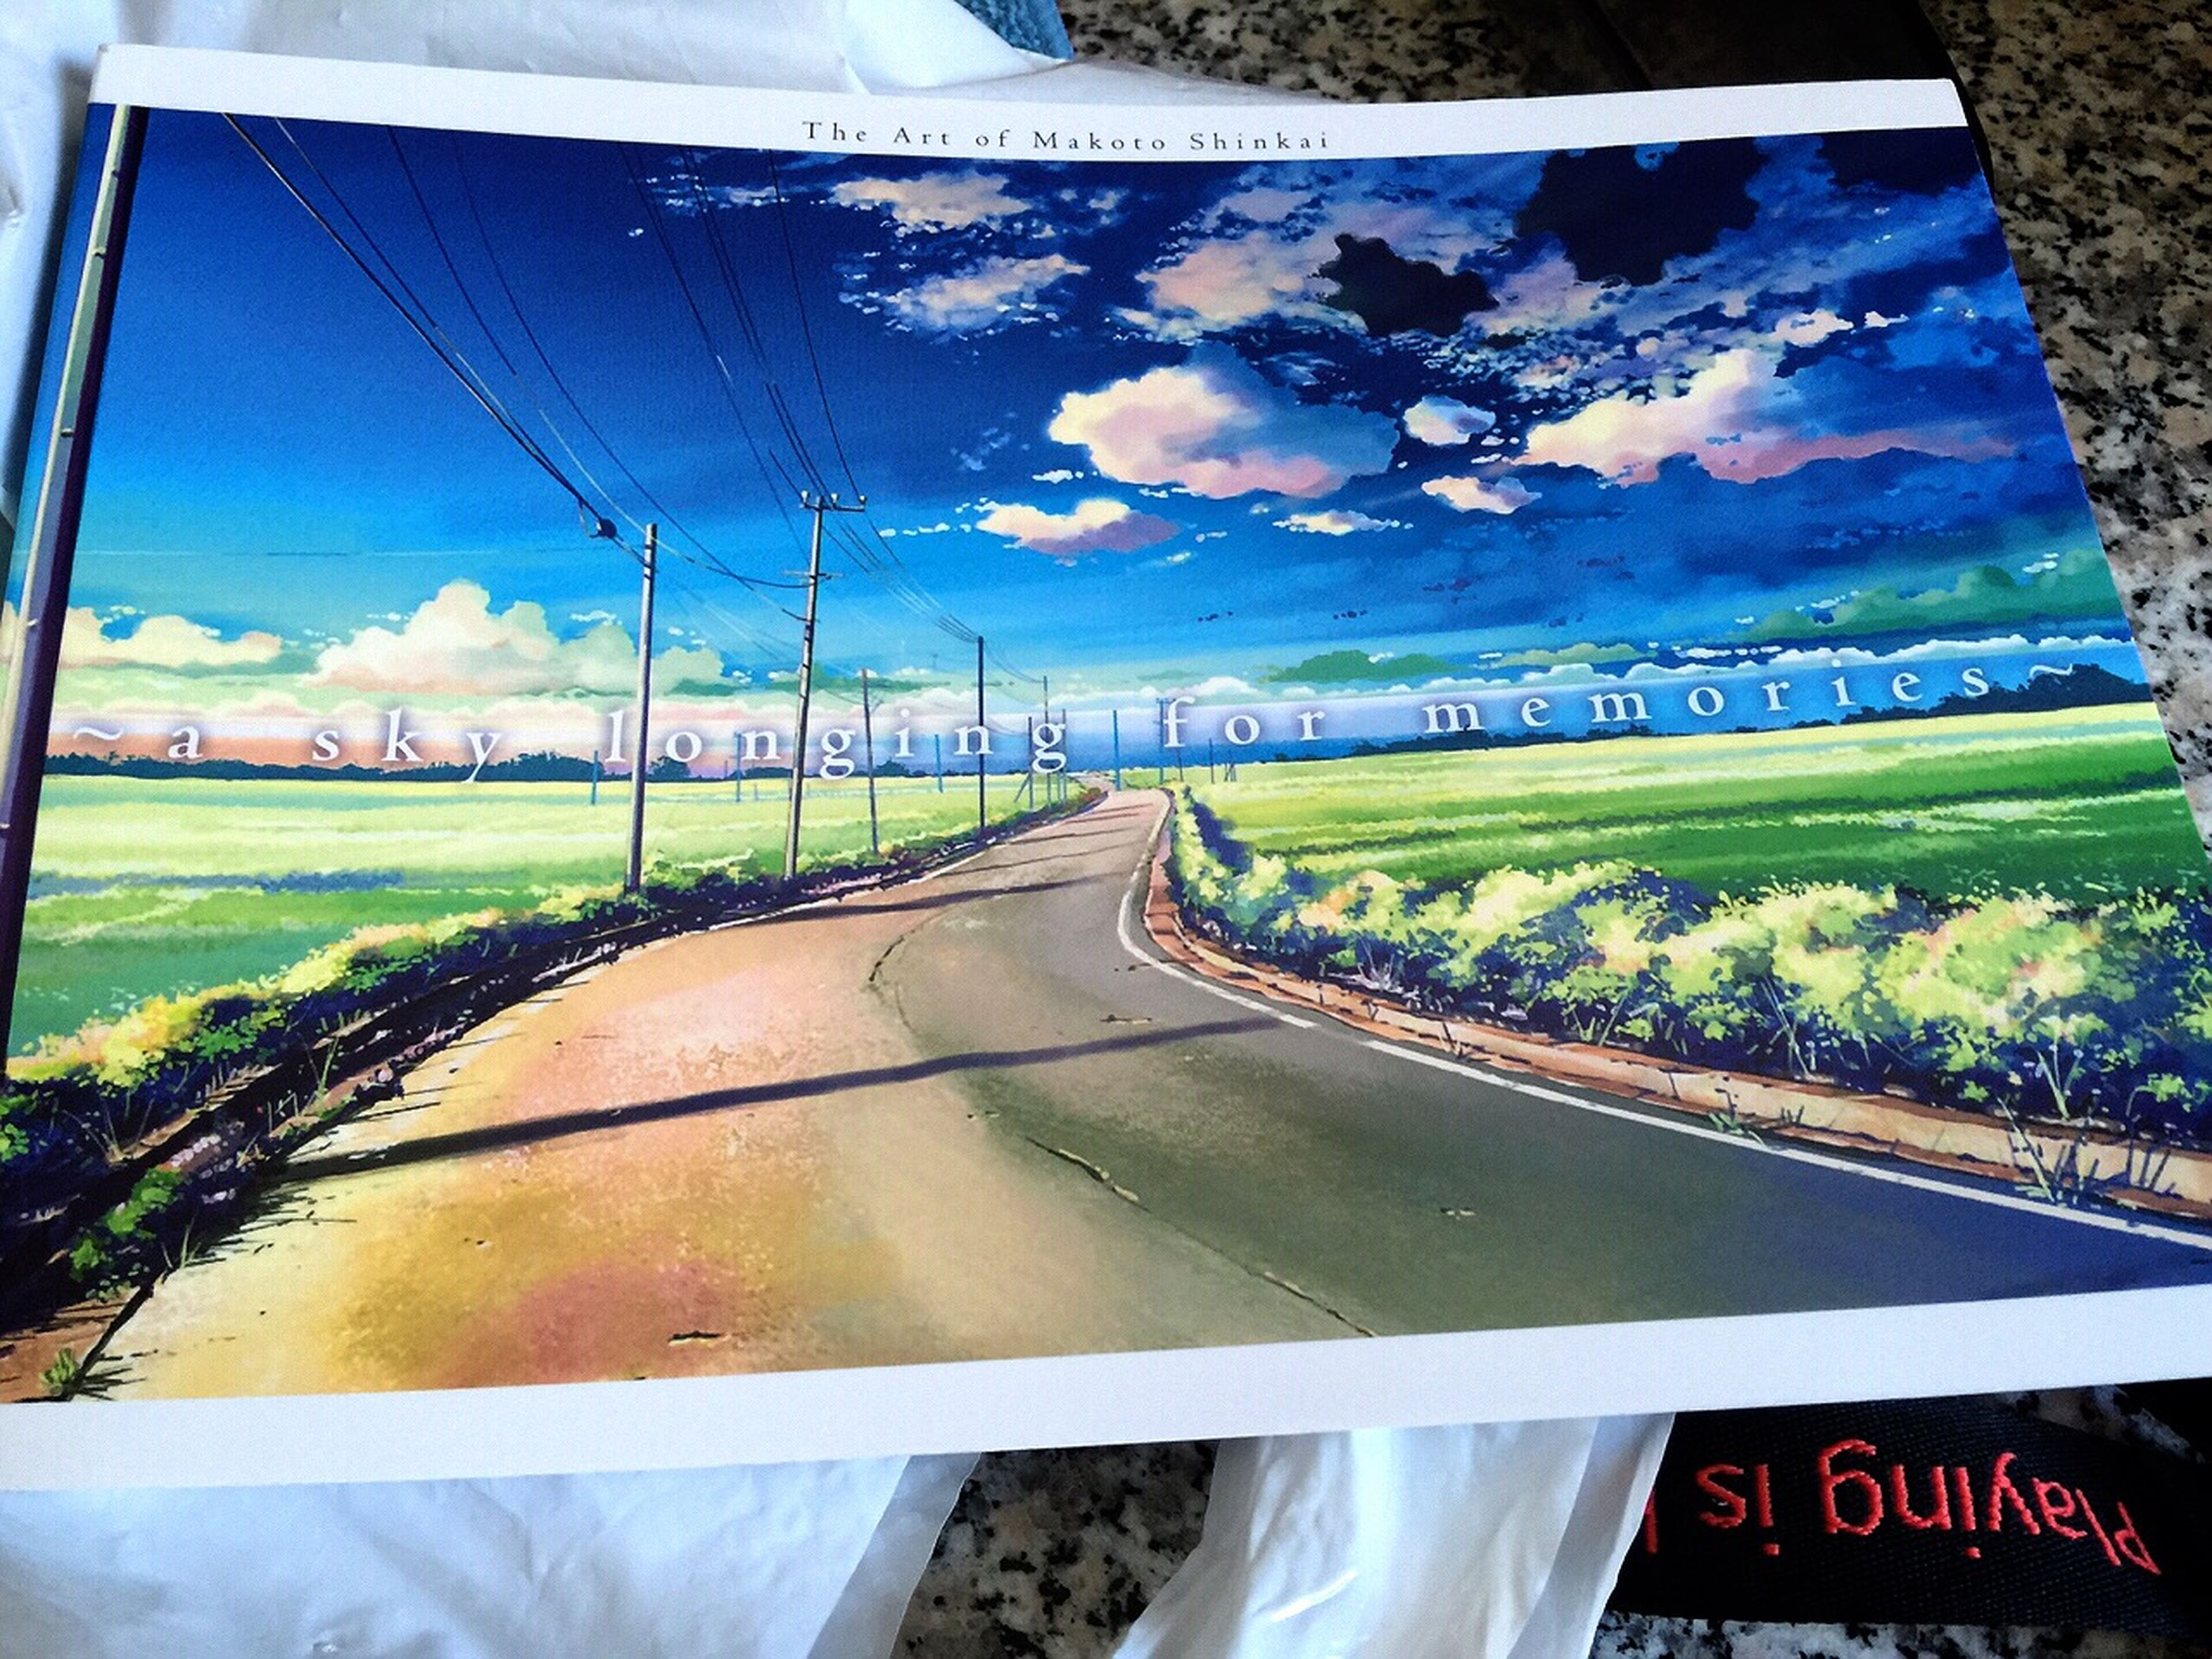 transportation, road, sky, the way forward, diminishing perspective, cloud - sky, landscape, vanishing point, road marking, field, country road, nature, cloud, day, weather, electricity pylon, street, season, asphalt, tranquil scene